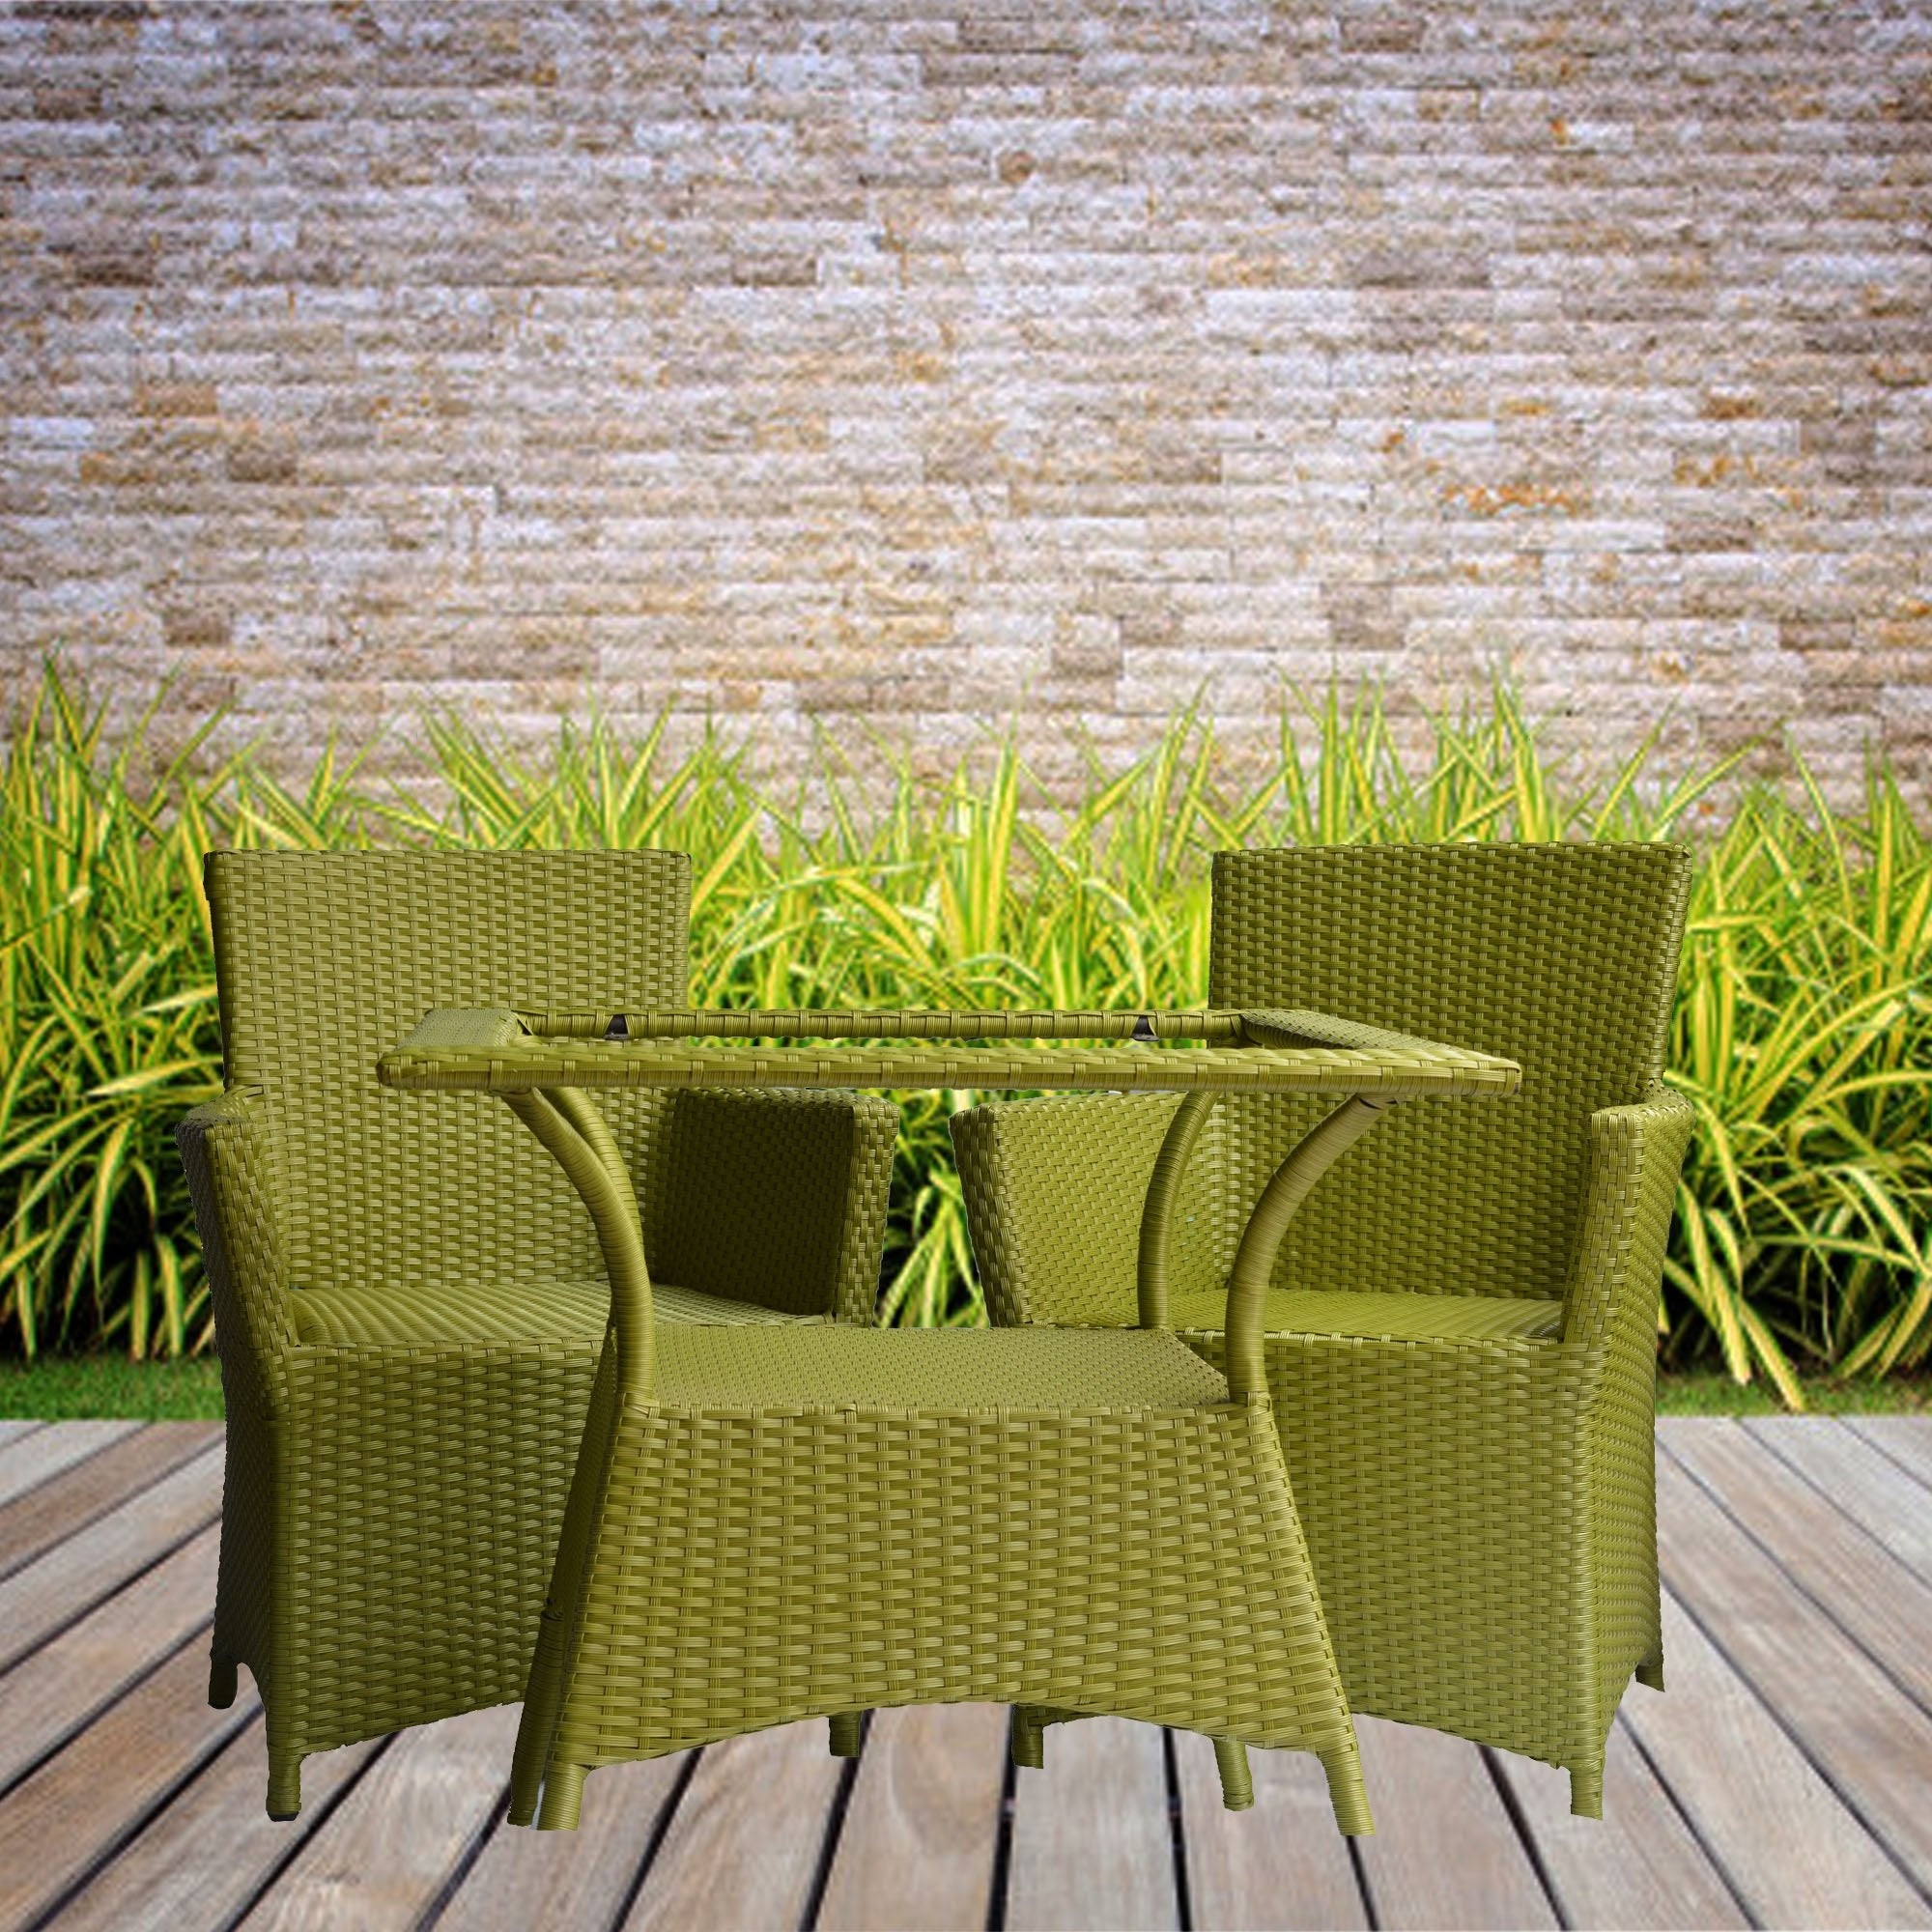 Outdoor Furniture for Evergreen look - Teak Tale